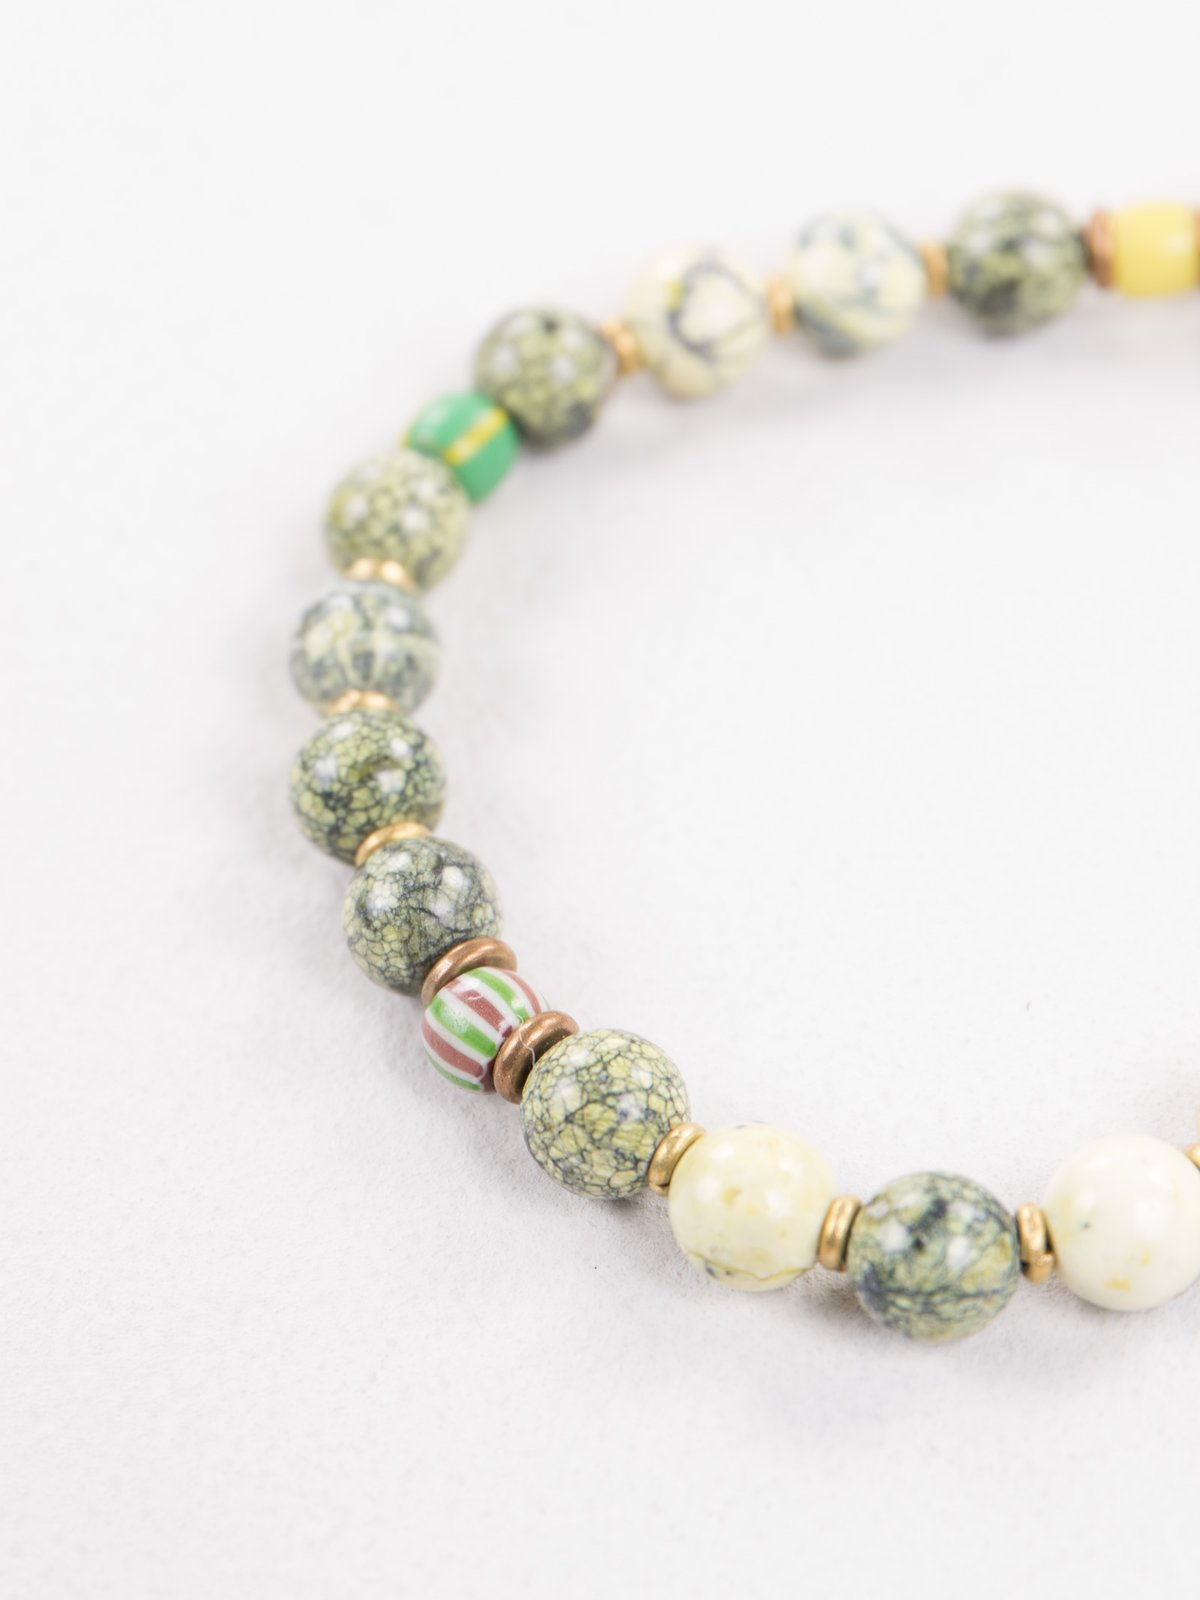 Yellow/Green 8mm Bracelet - Image 2